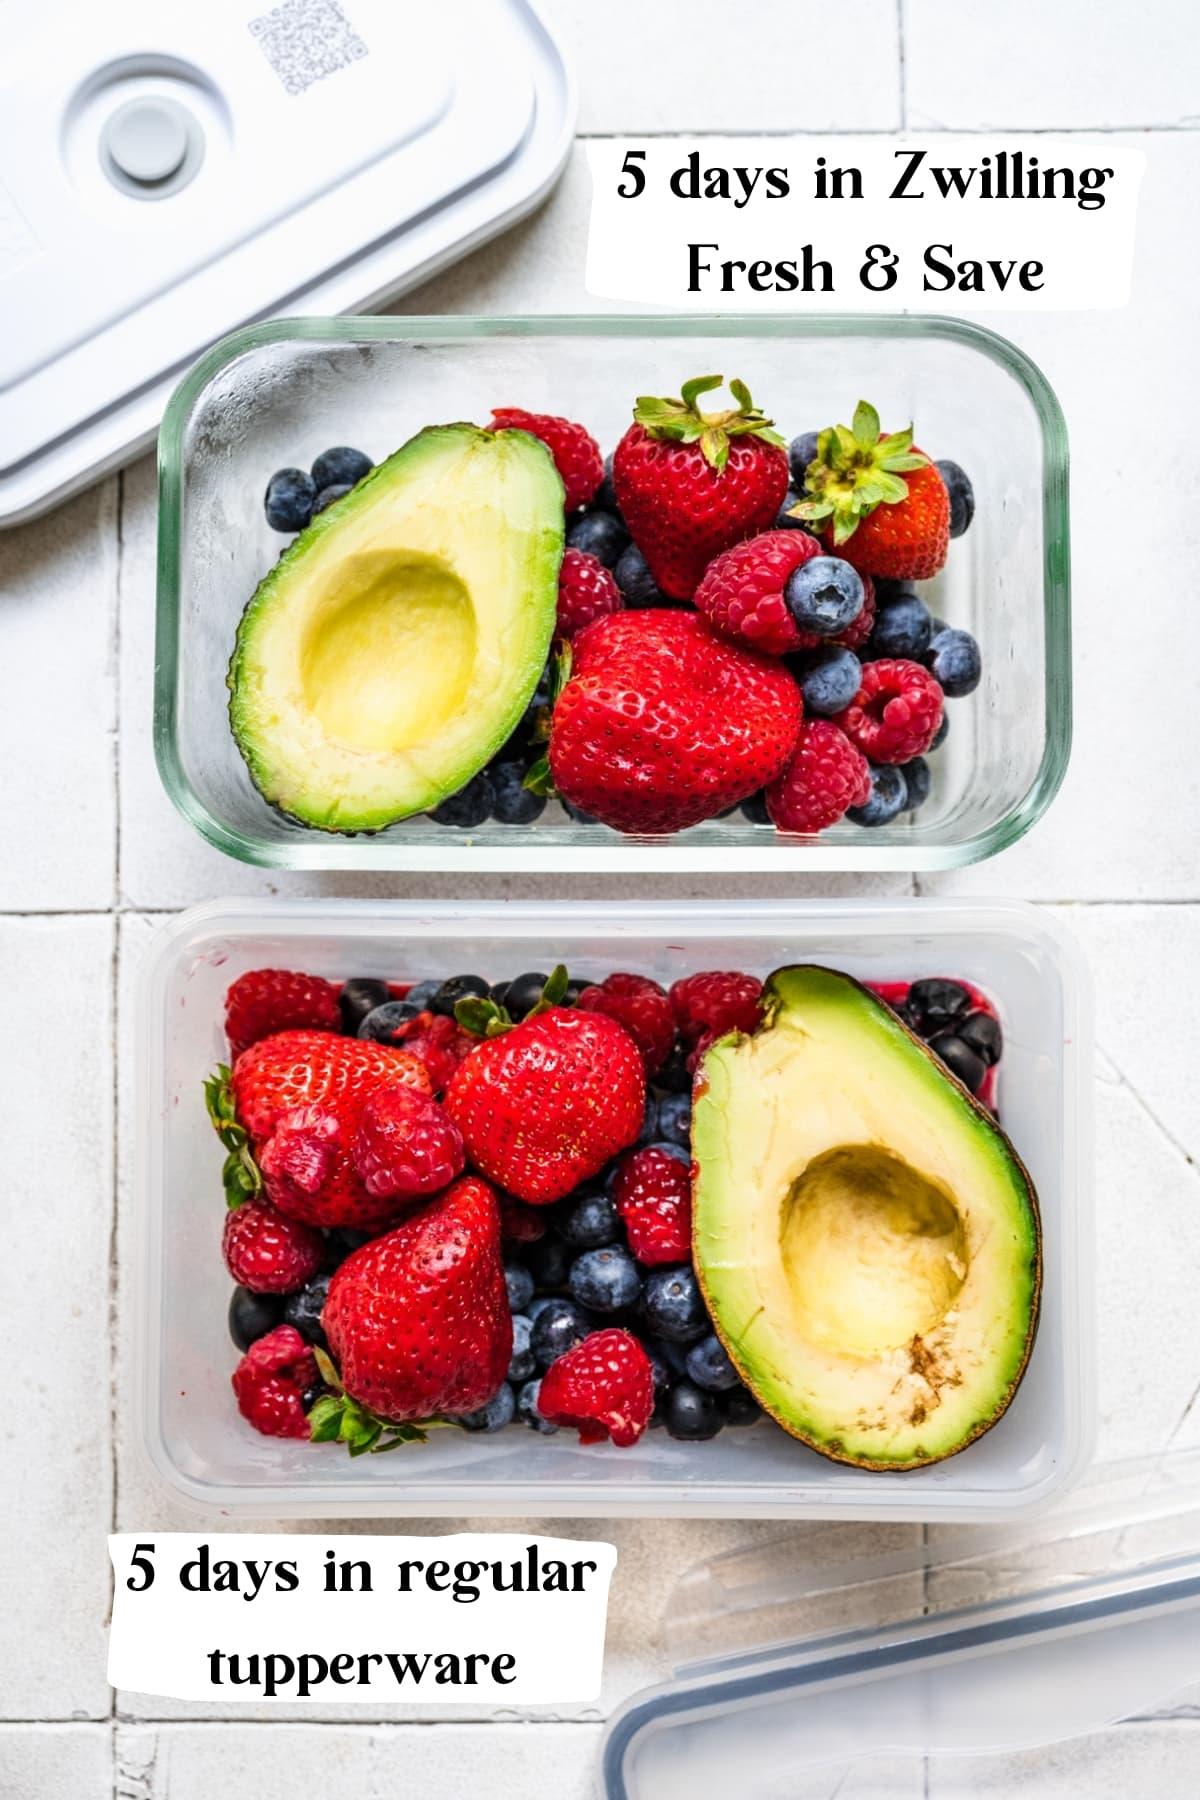 overhead view of berries and avocado in two different tupperware containers.